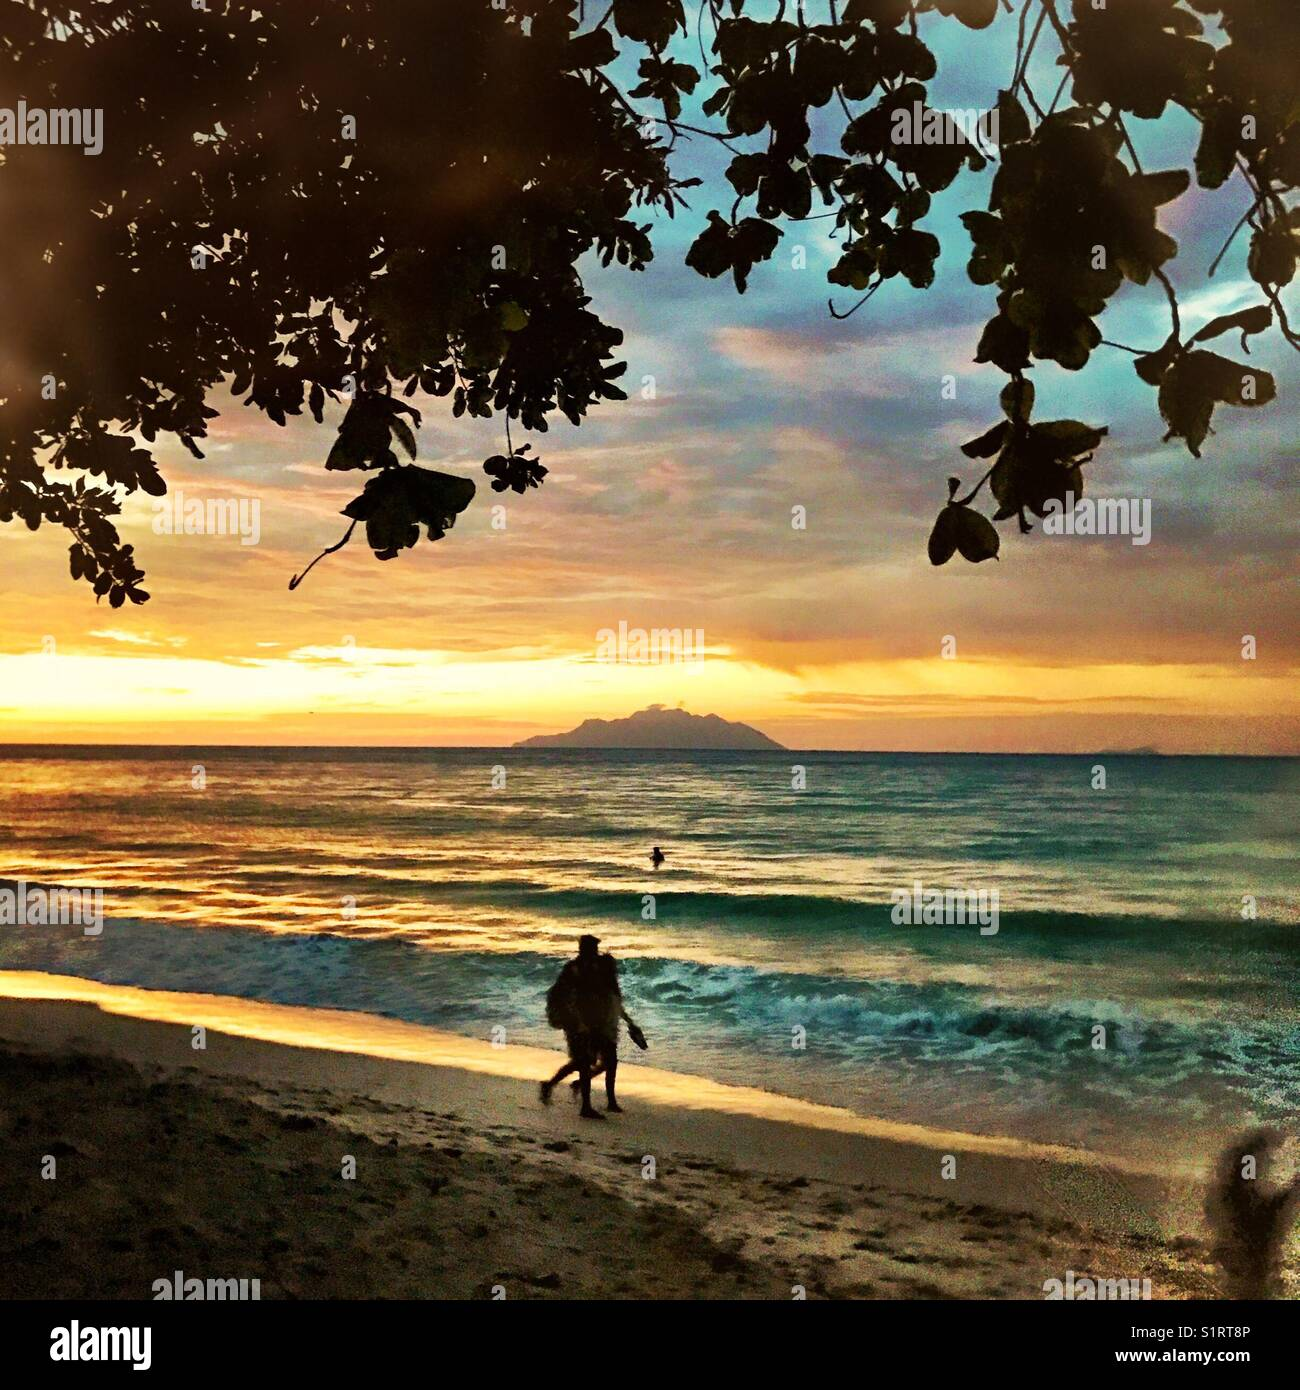 People on Seychelles beach Beau Vallon sunset Stock Photo